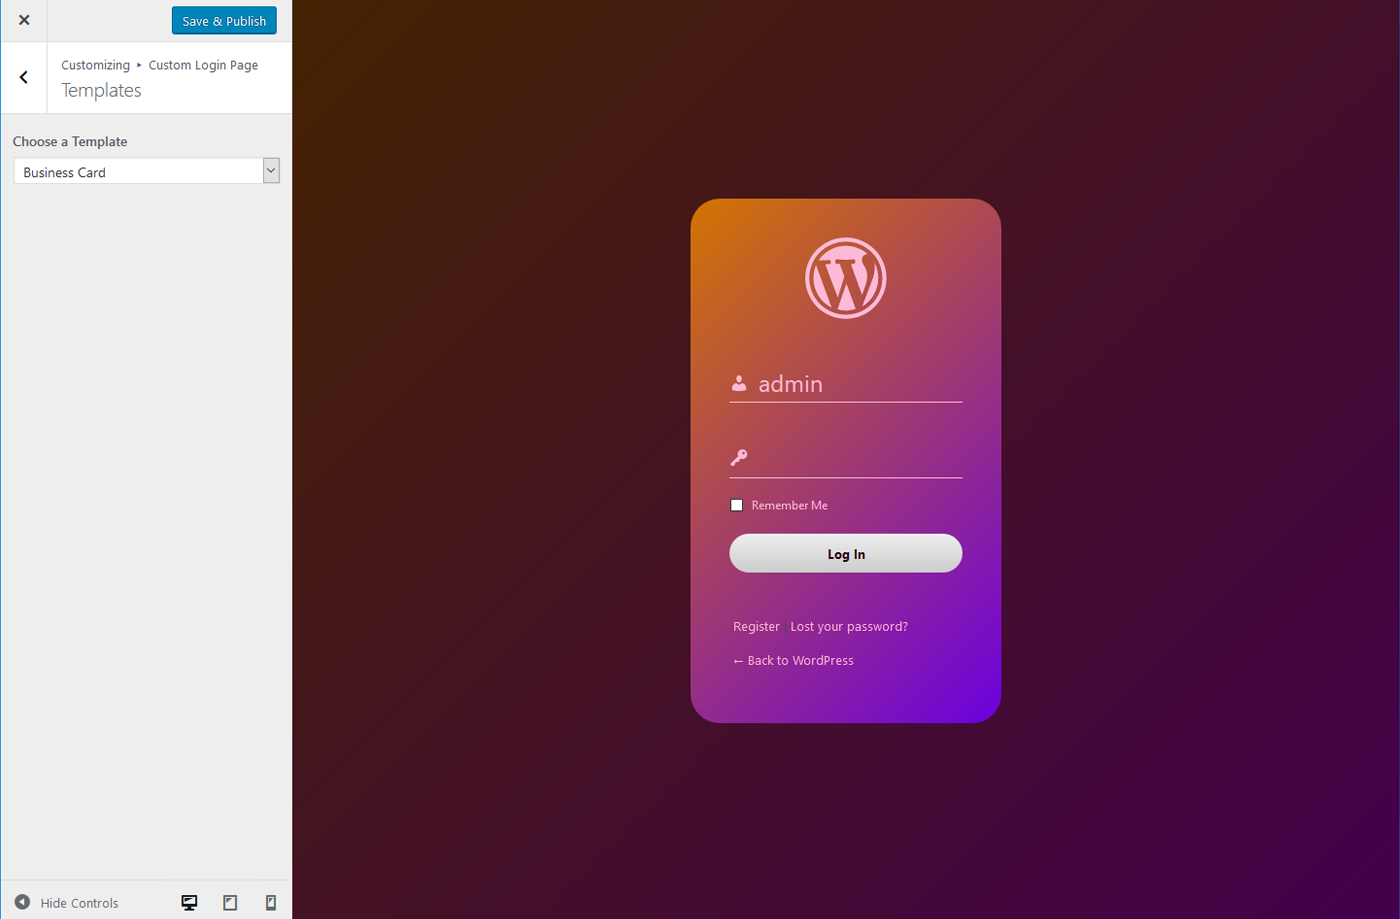 Custom Login Page Templates Change Logo Background And